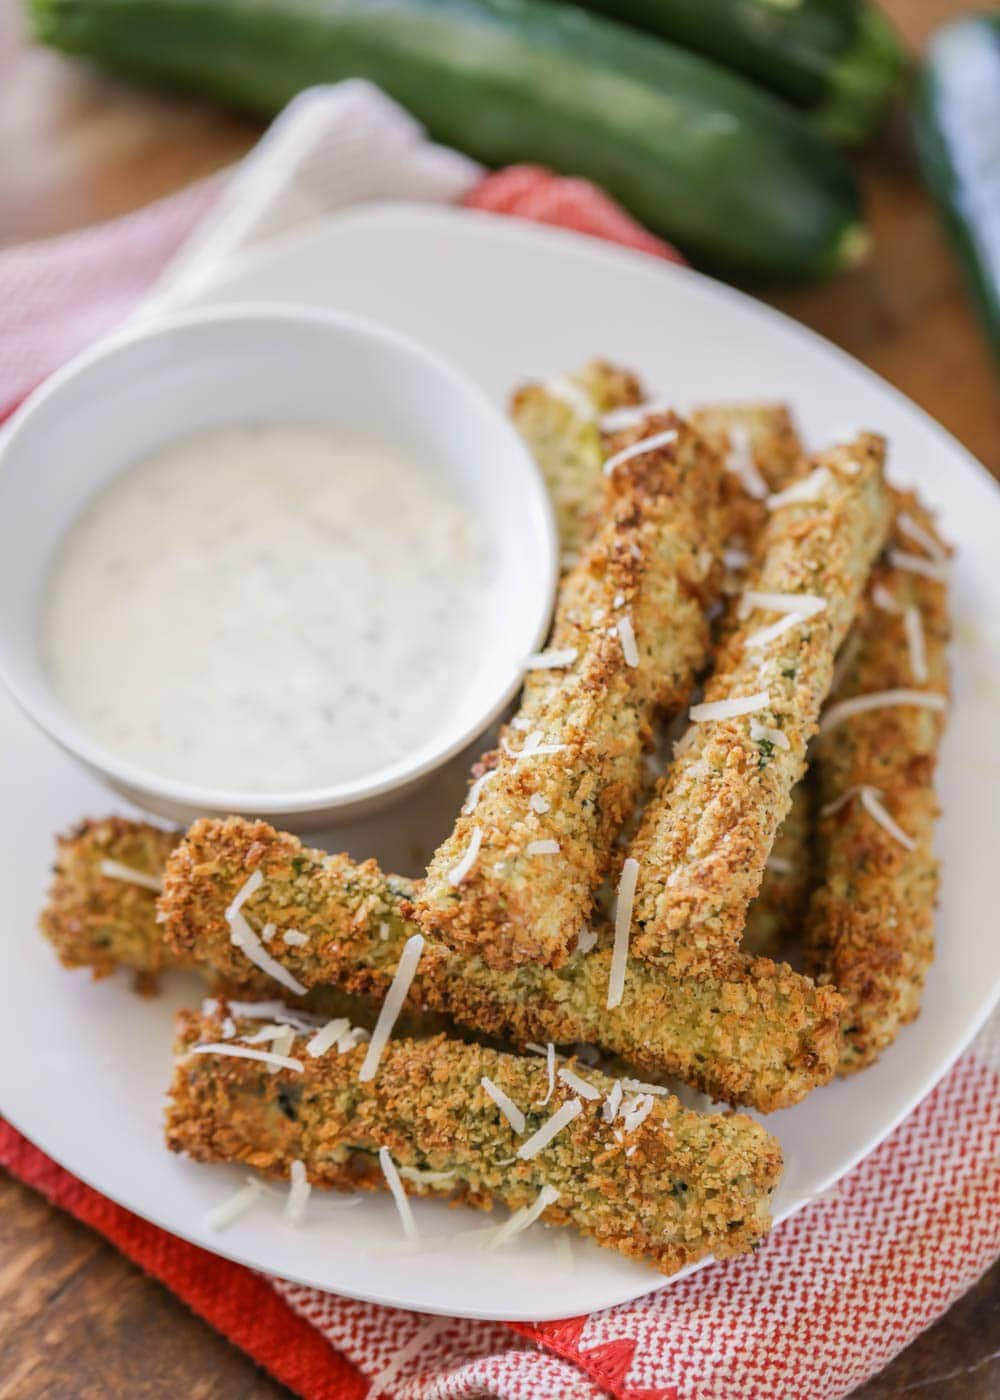 Air fryer zucchini fries on a plate with a side of ranch